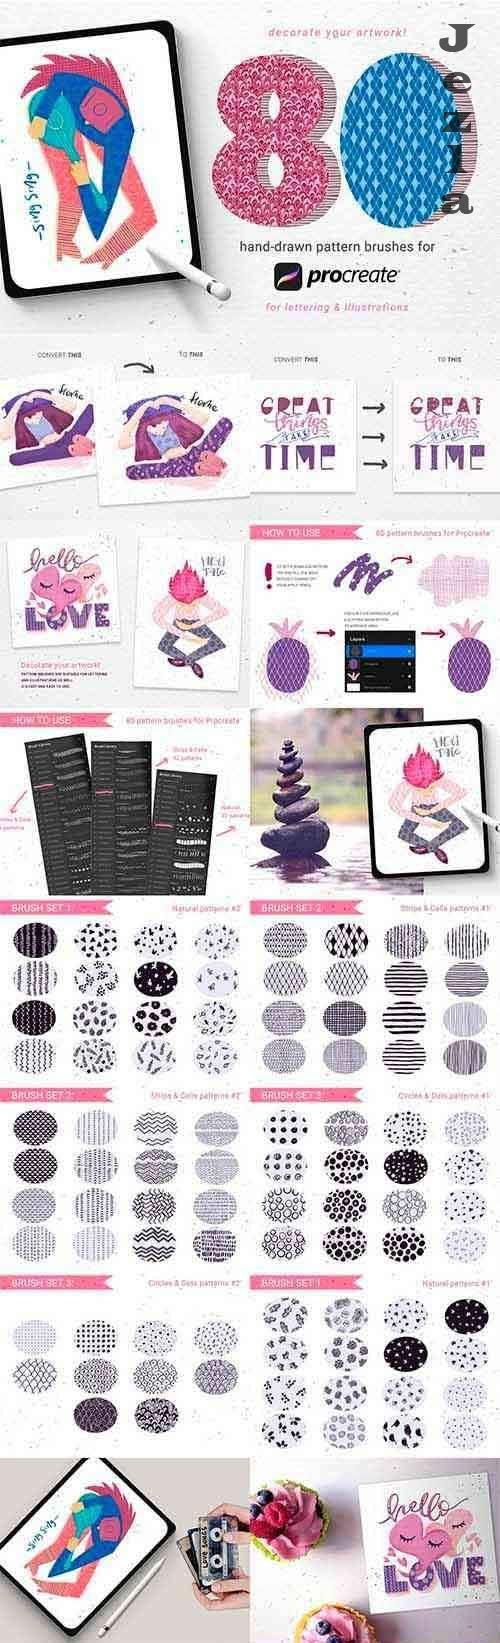 80 hand-drawn patterns for Procreate 5091208